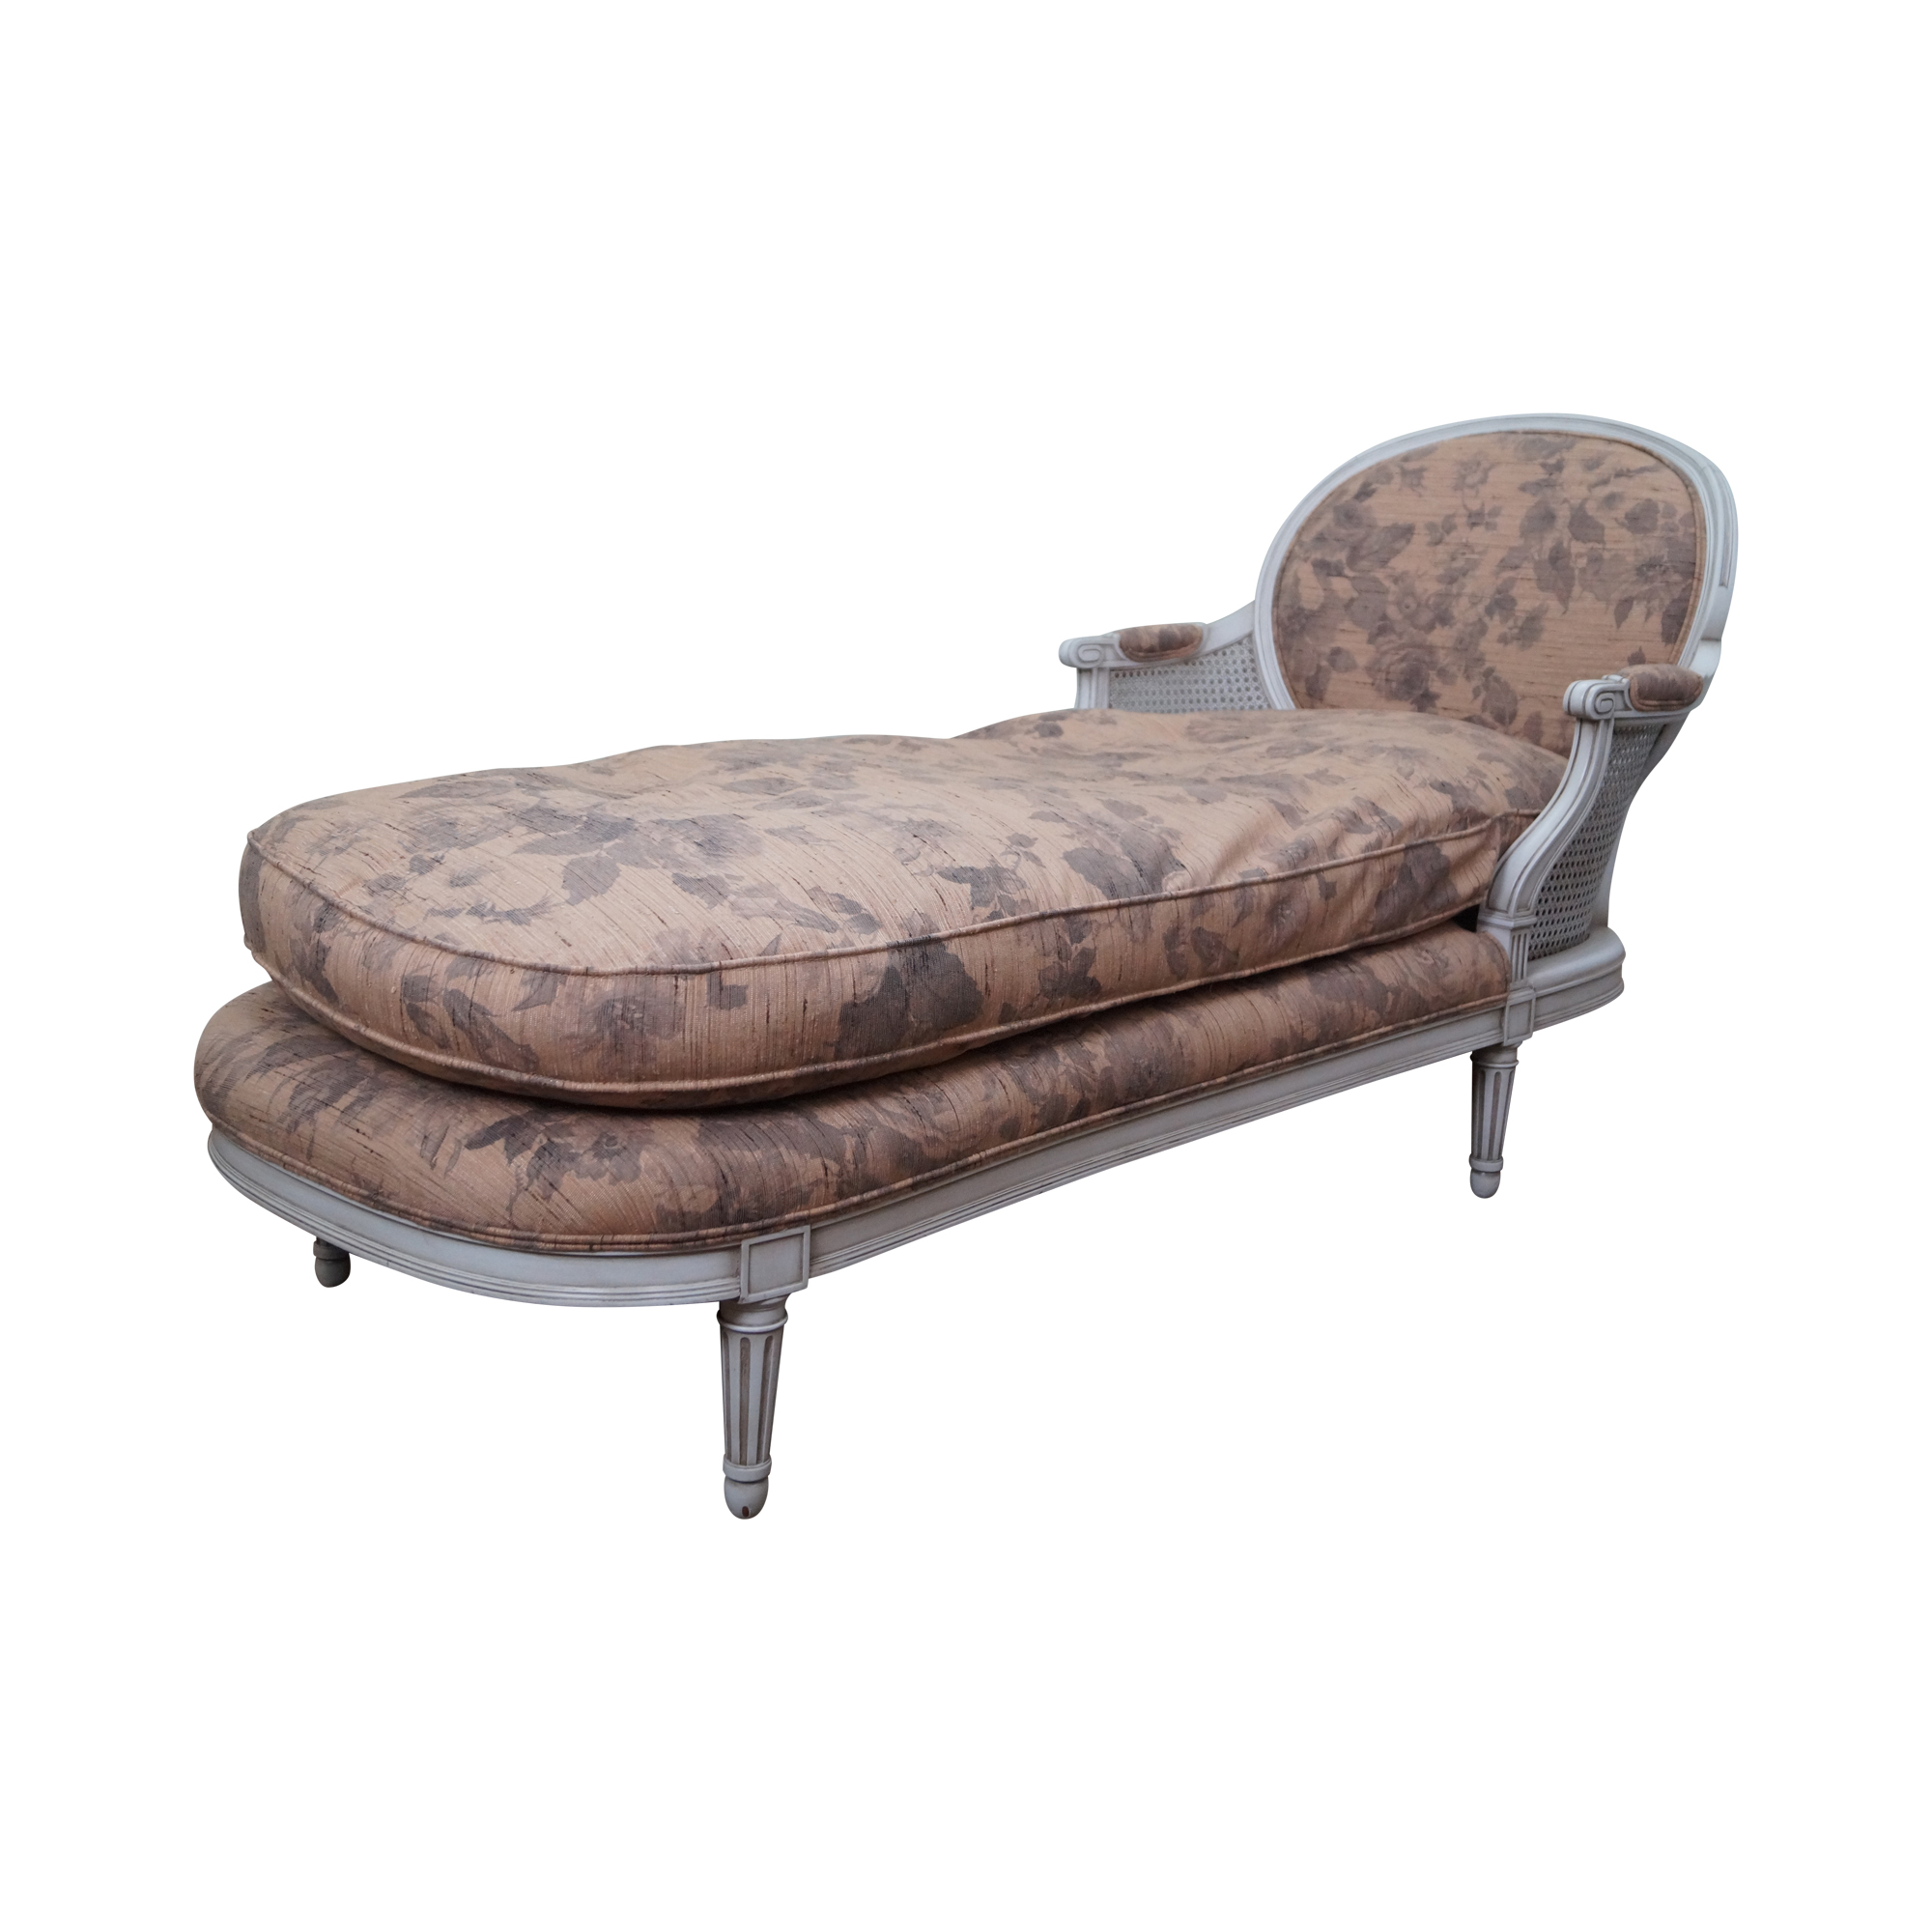 quality louis xvi style chaise lounge chairish